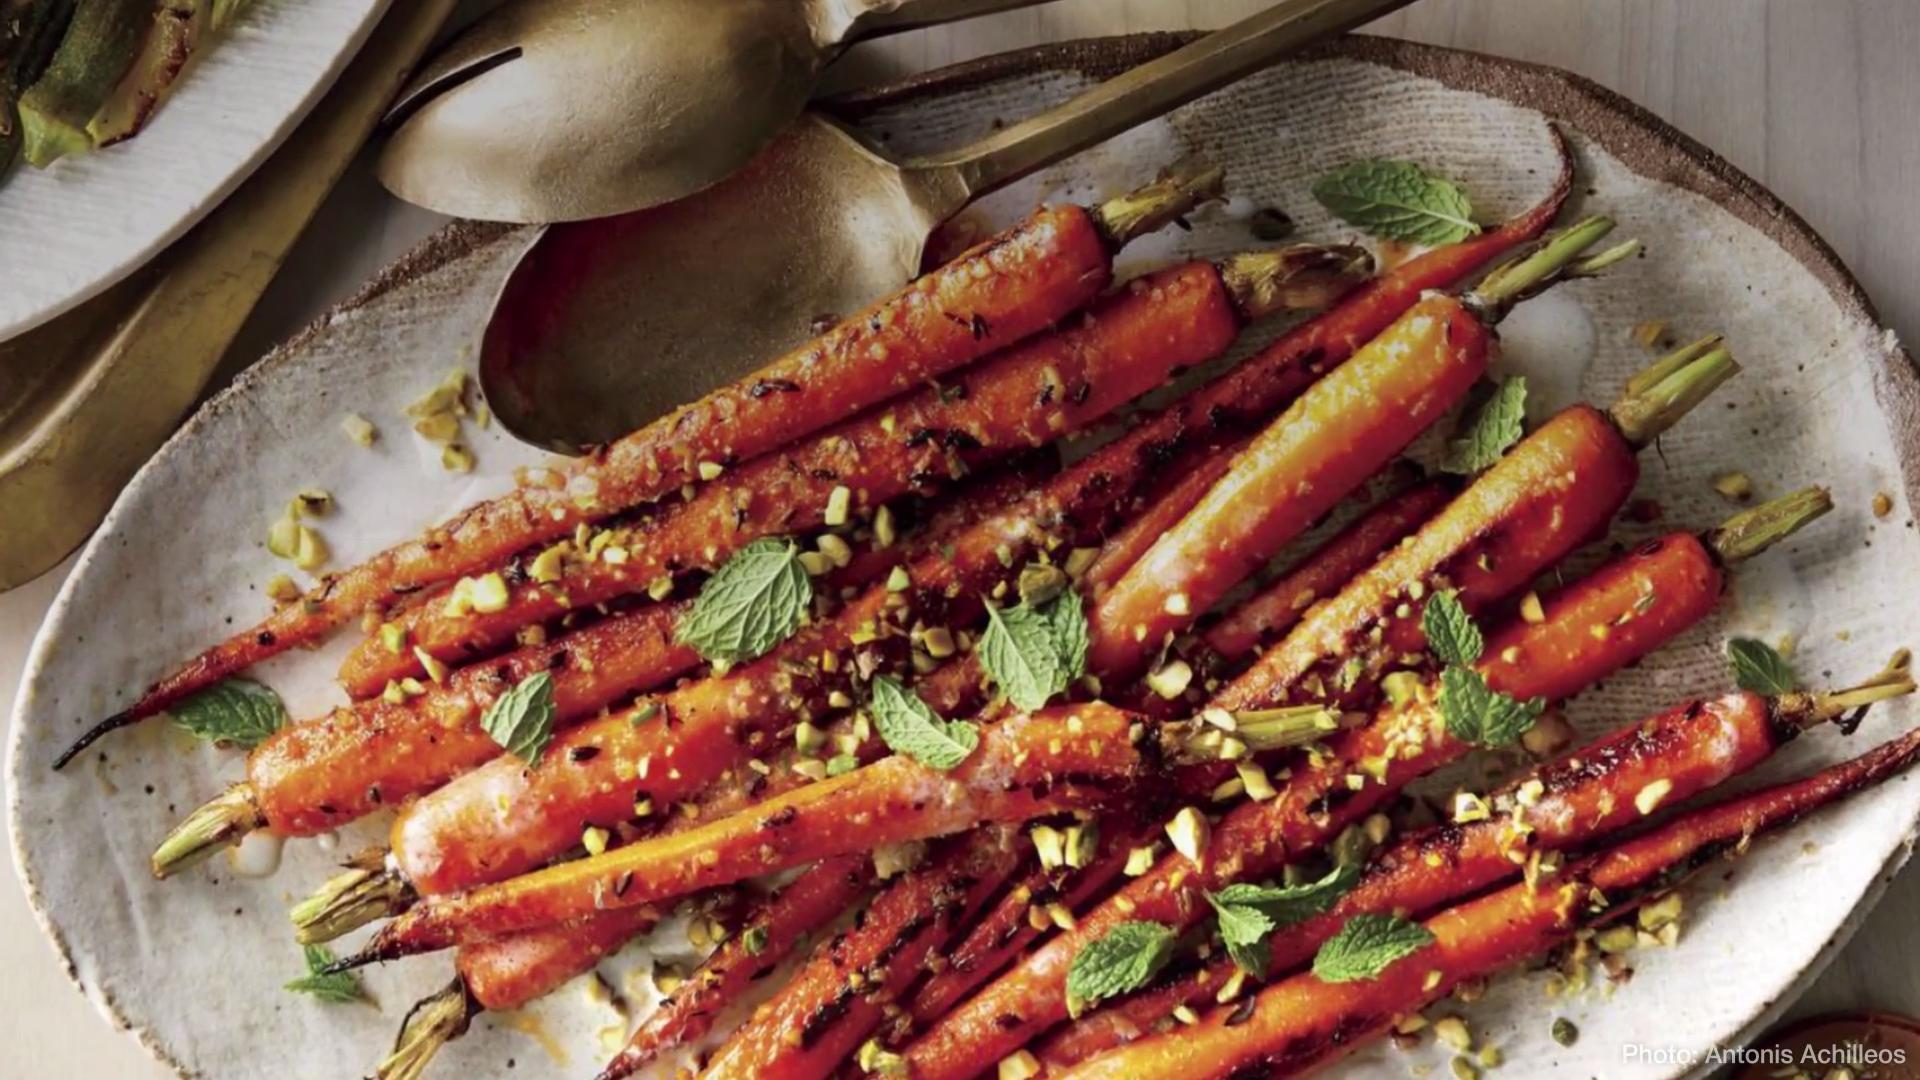 Kick off Fall Cooking in September With These Delicious New Recipes